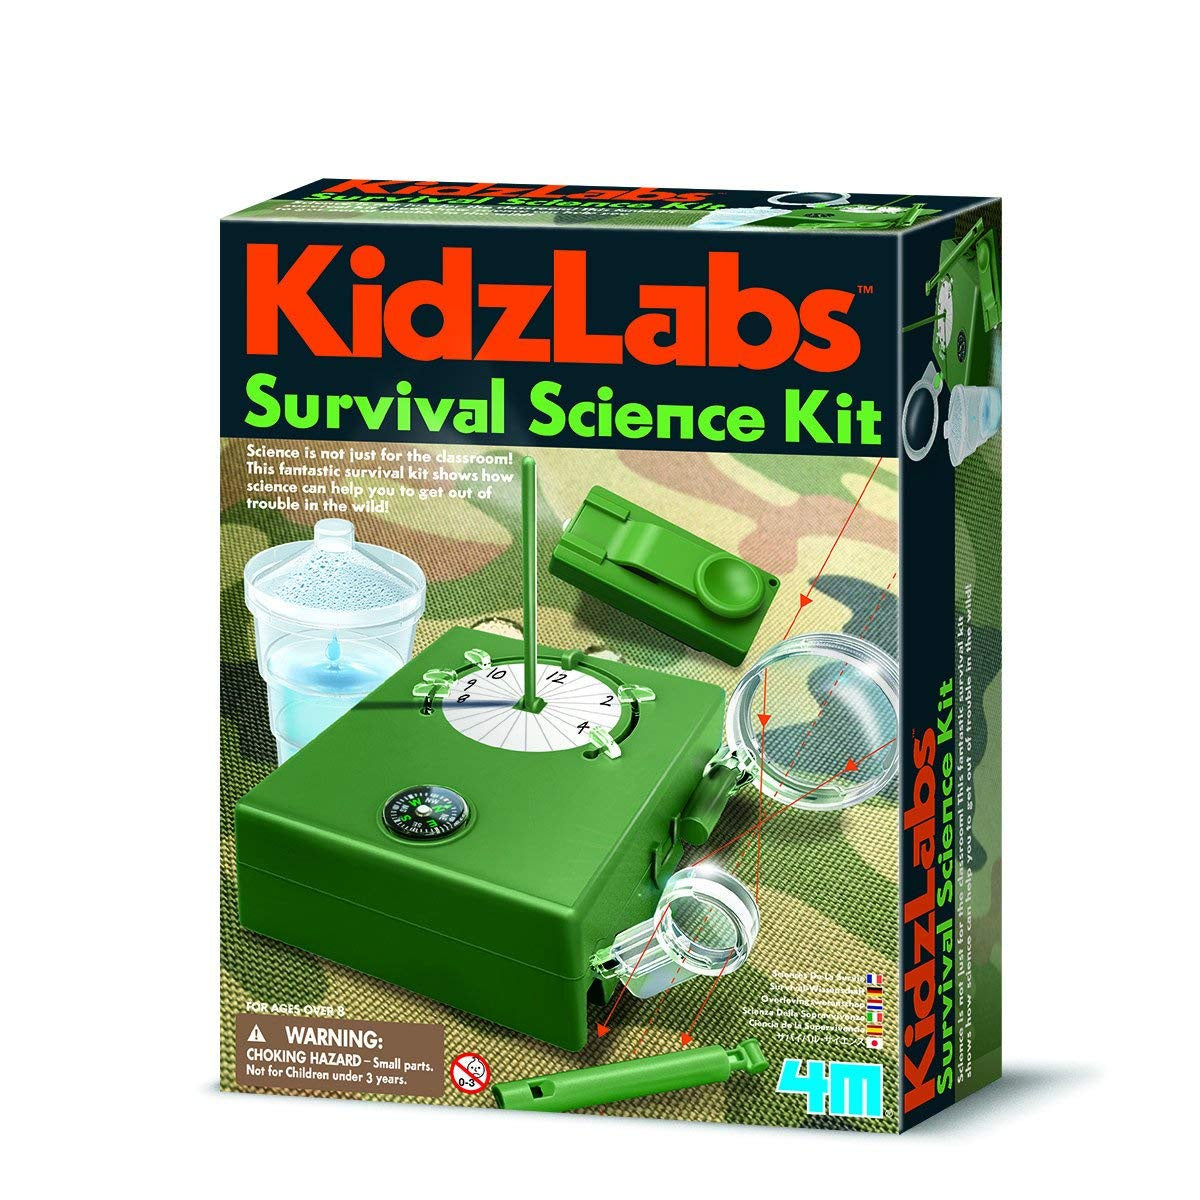 Kidz Labs Survival Science